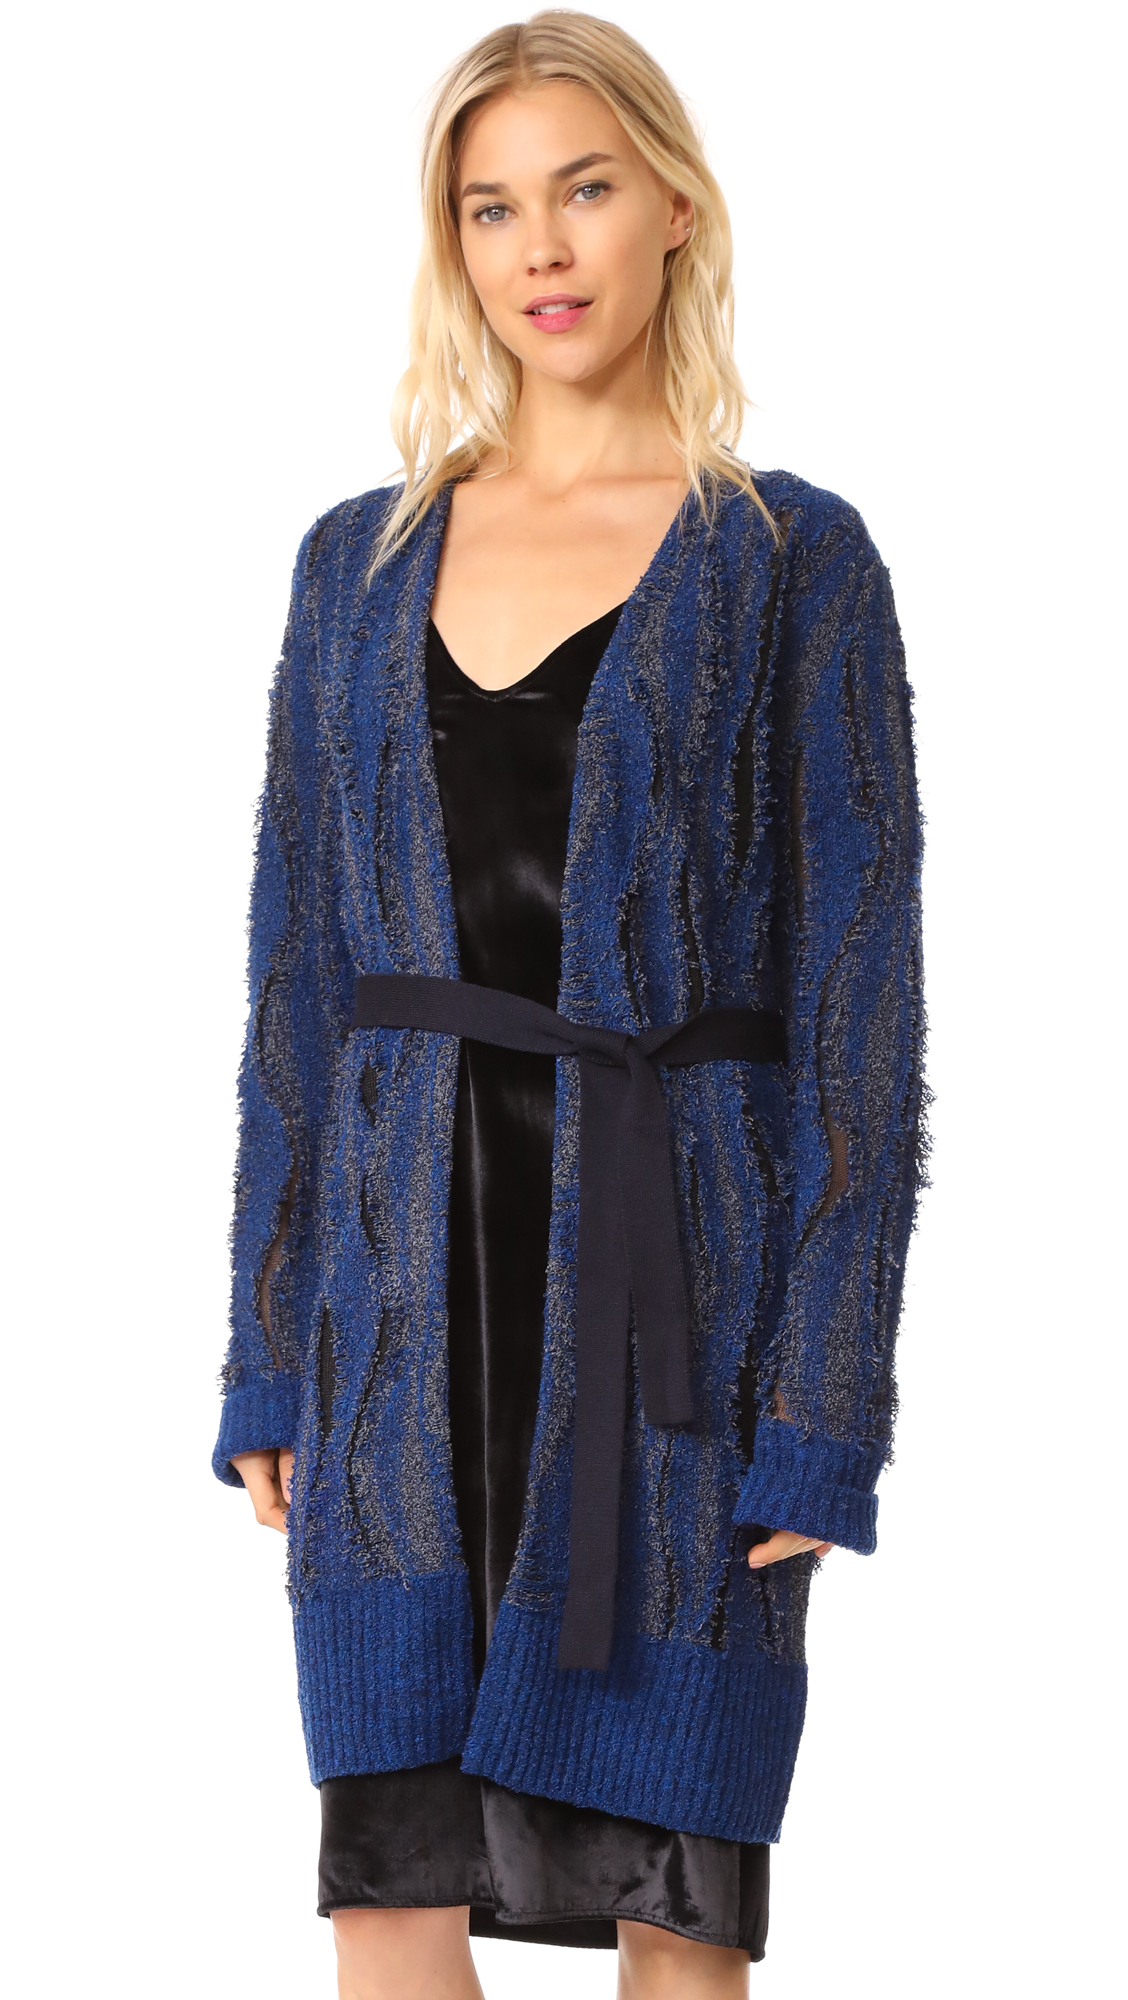 Opening Ceremony Boucle Jacquard Cardigan - Eclipse Multi